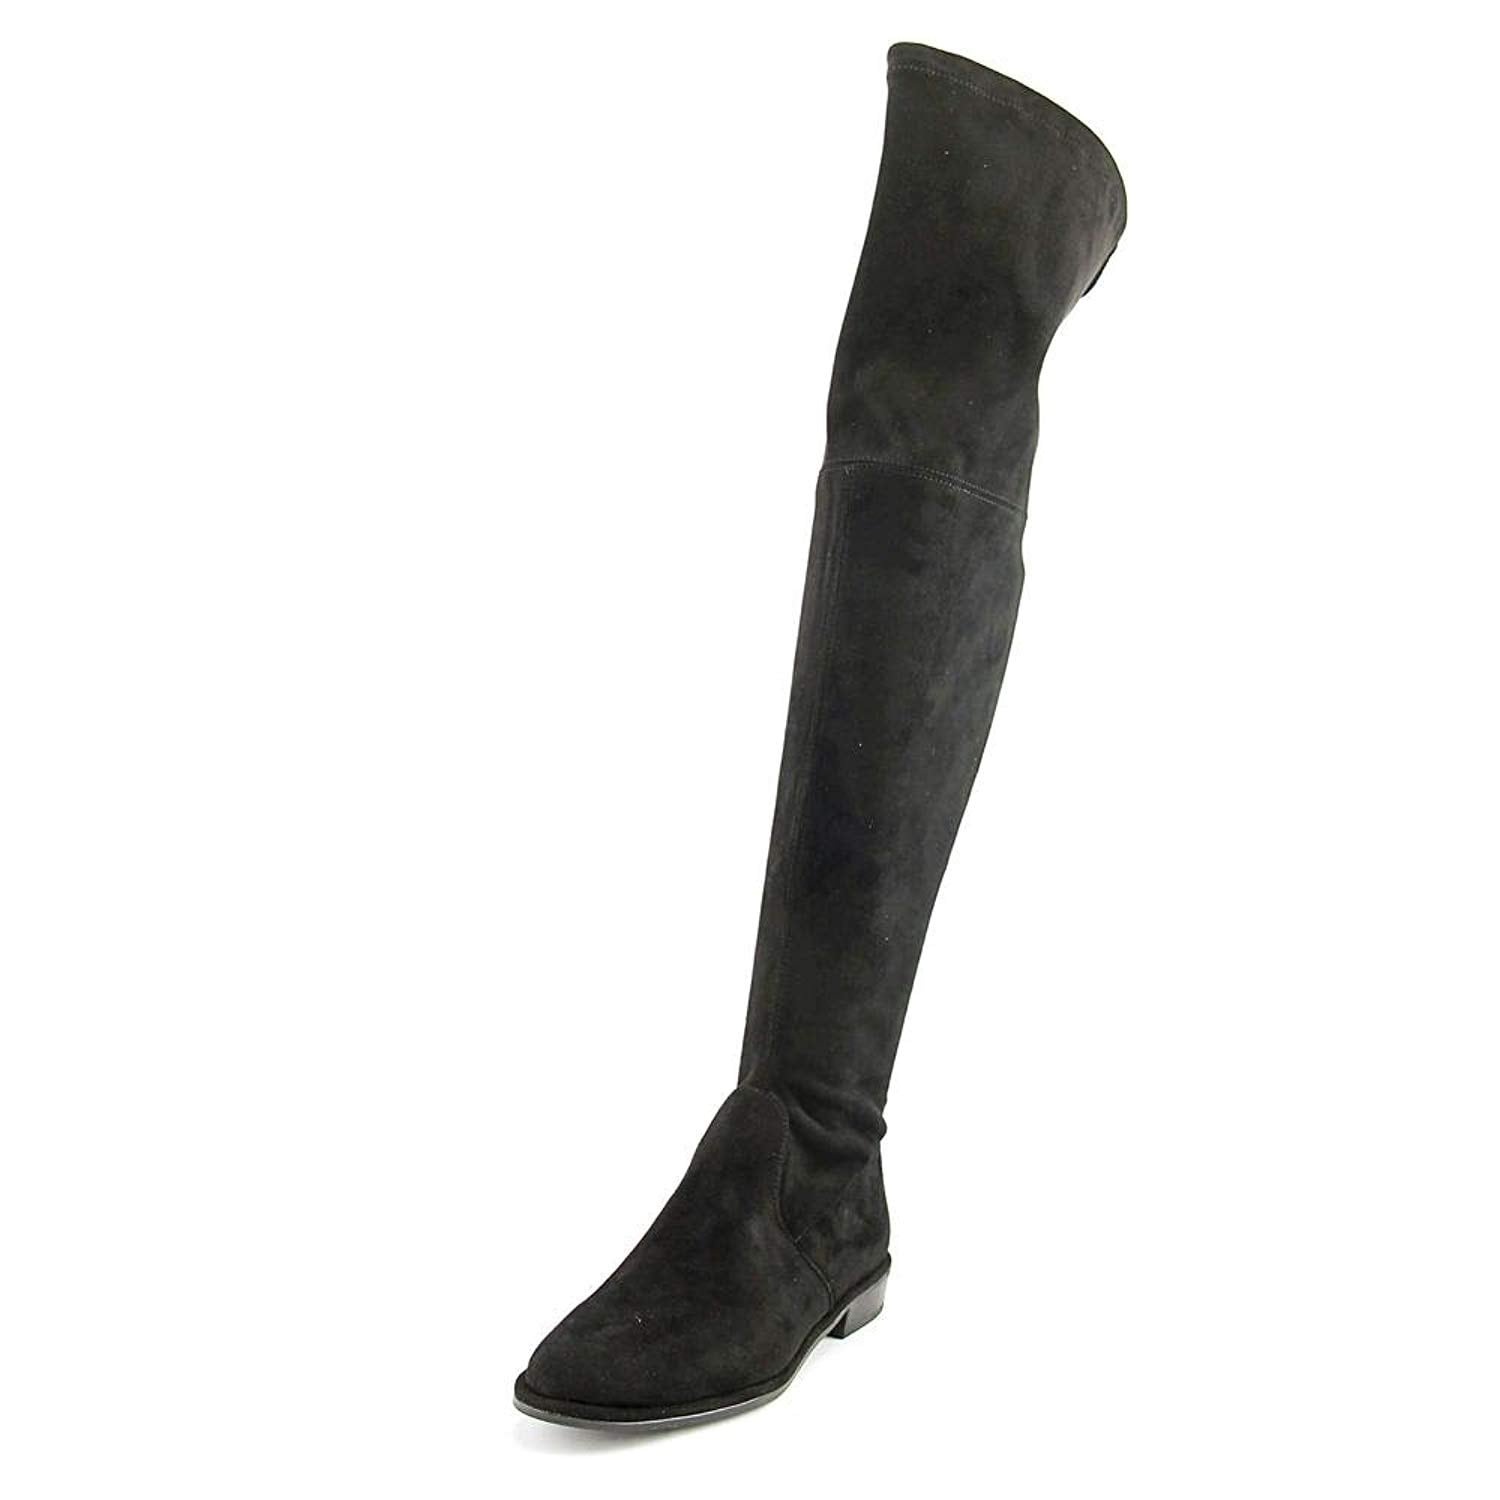 Humor Bearpaw Boots Size 7 Dark Blue Clothing, Shoes & Accessories